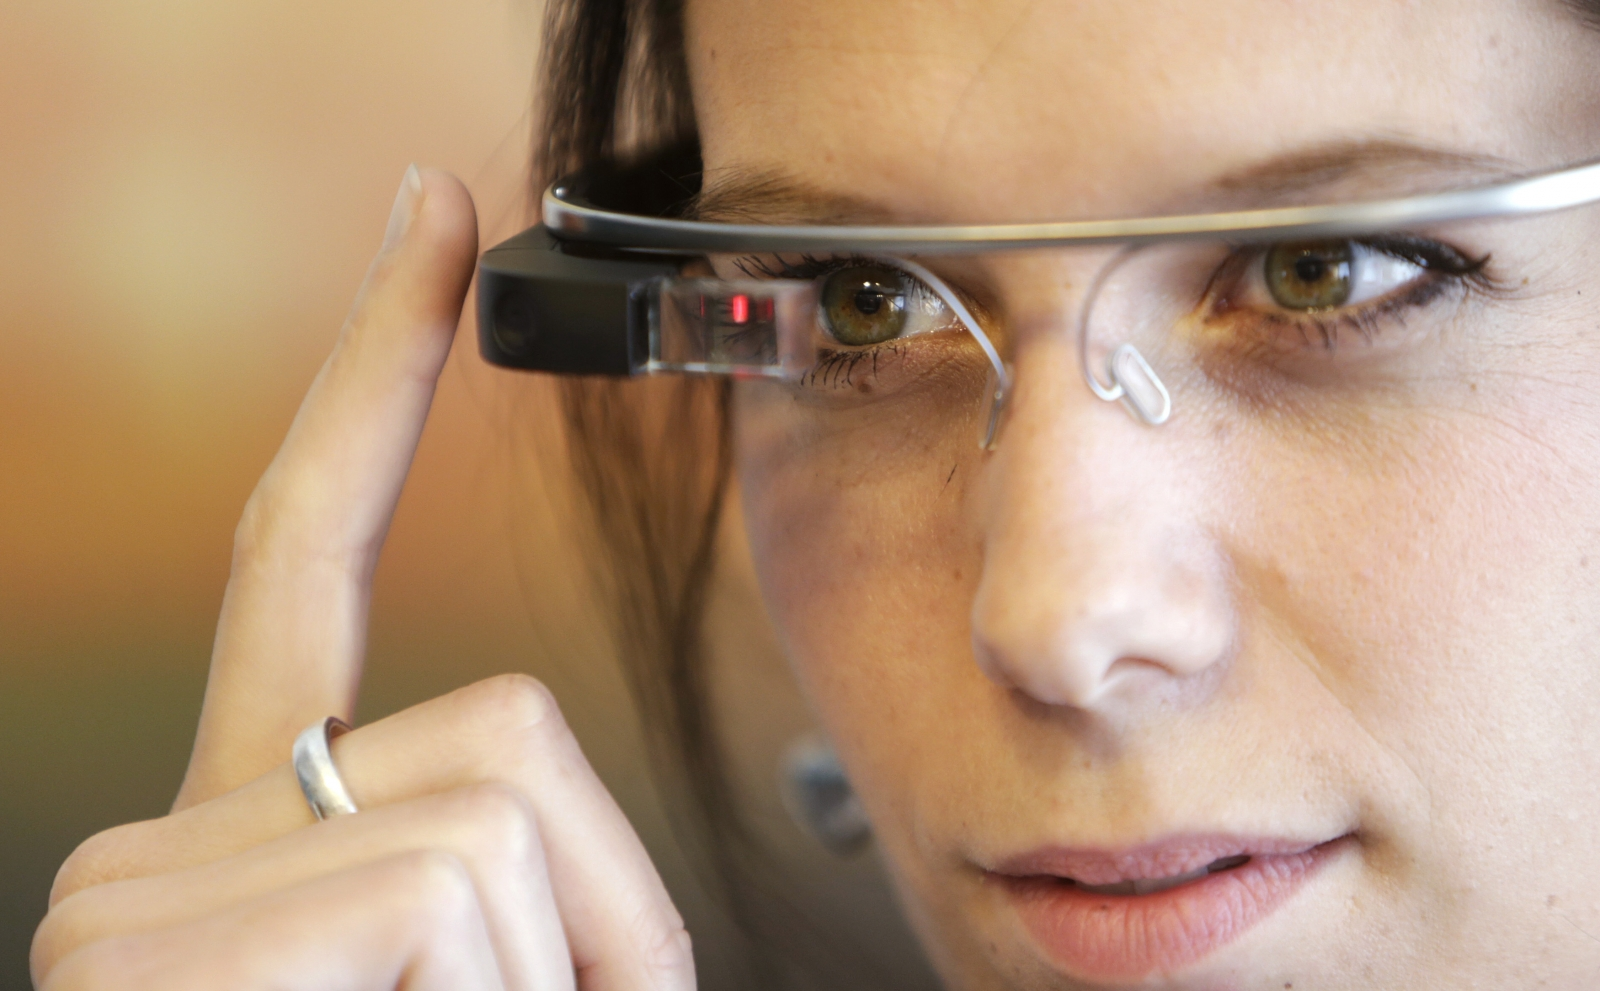 Don't Wear Google Glass: Device Causes Blind Spots By Obstructing Peripheral Vision